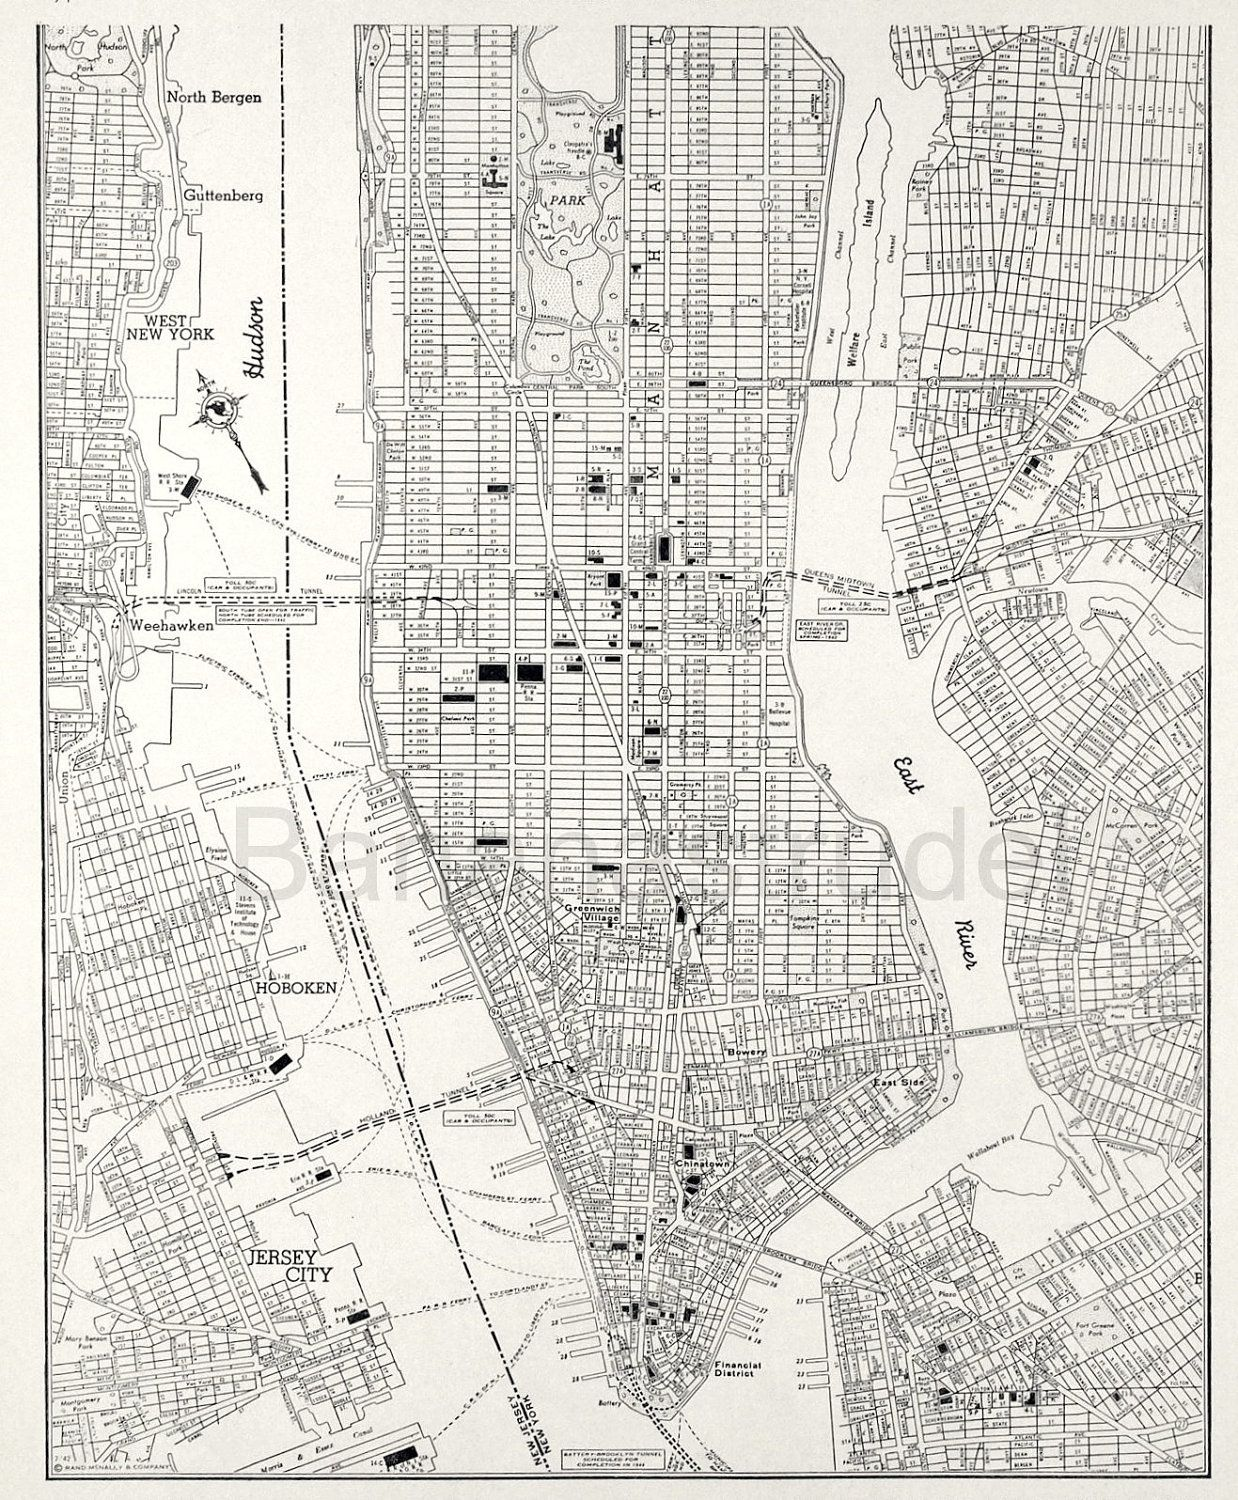 New York Map Black And White.Vintage Map Of Manhattan New York City Lower Manhattan 1942